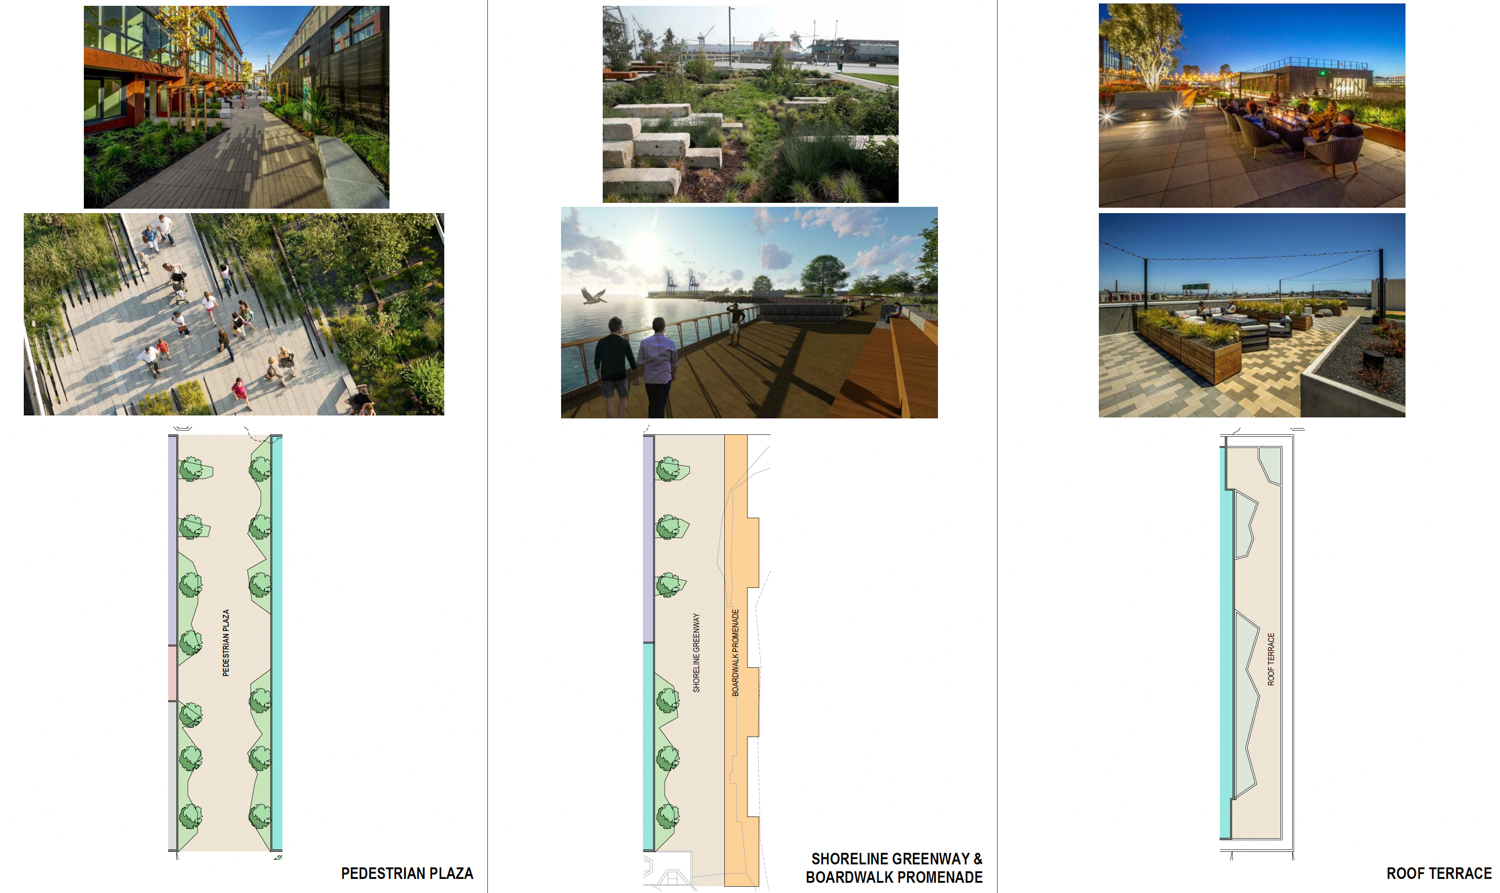 3100 Third Street open space design precedents for inspiration, board by Workshop1